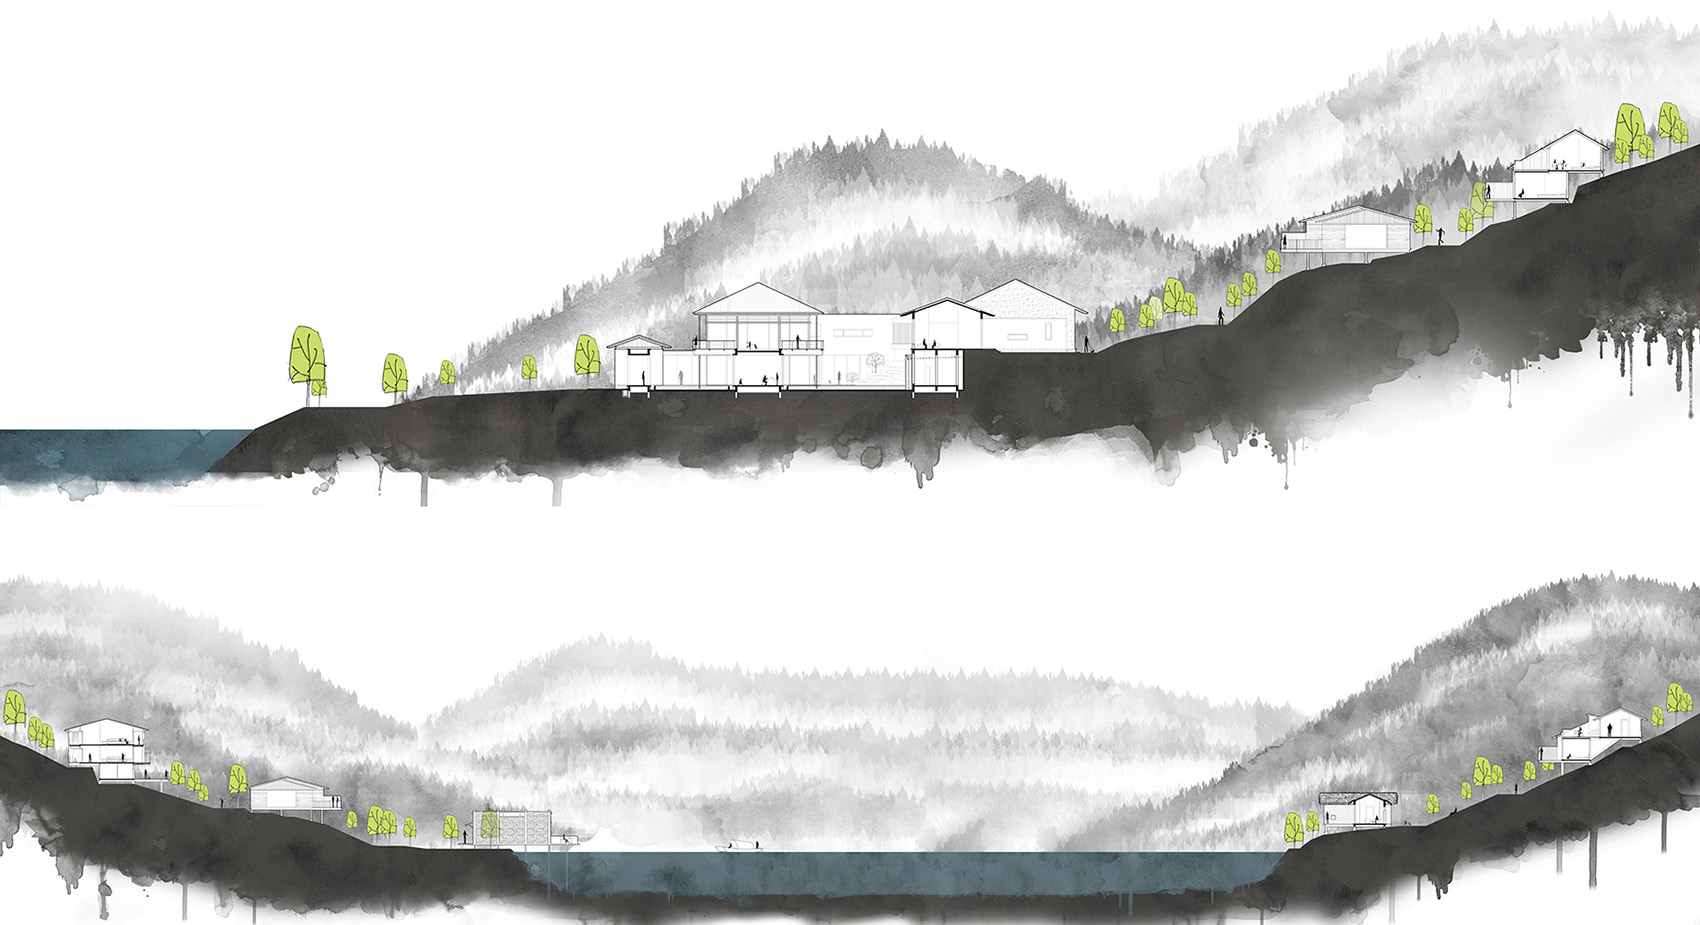 001-fuchun-mountain-resort-china-by-the-design-institute-of-landscape-architecture-china-academy-of-art.jpg